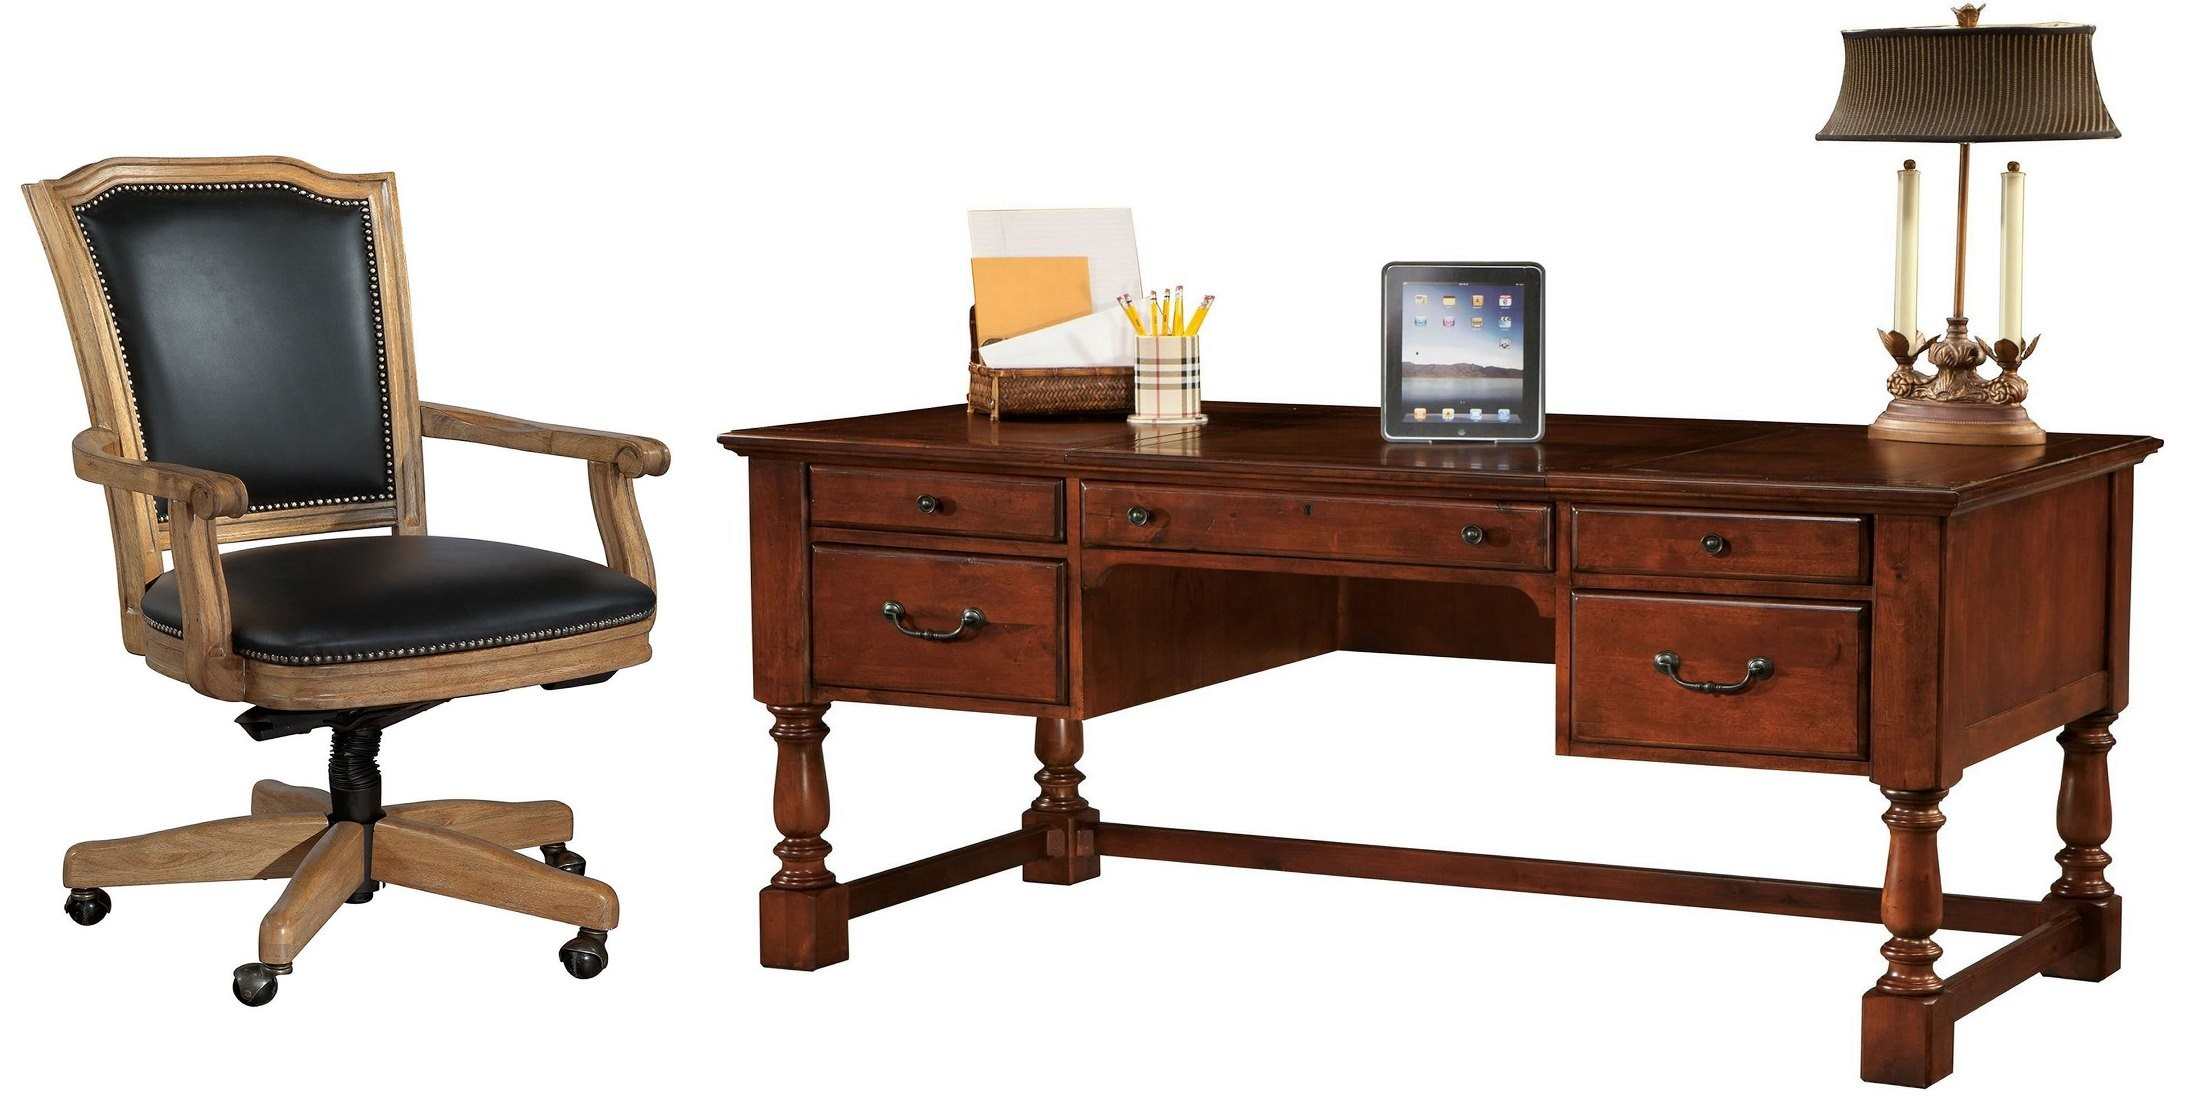 Weathered cherry desk home office set from hekman furniture coleman furniture - Home office desk furniture sets ...